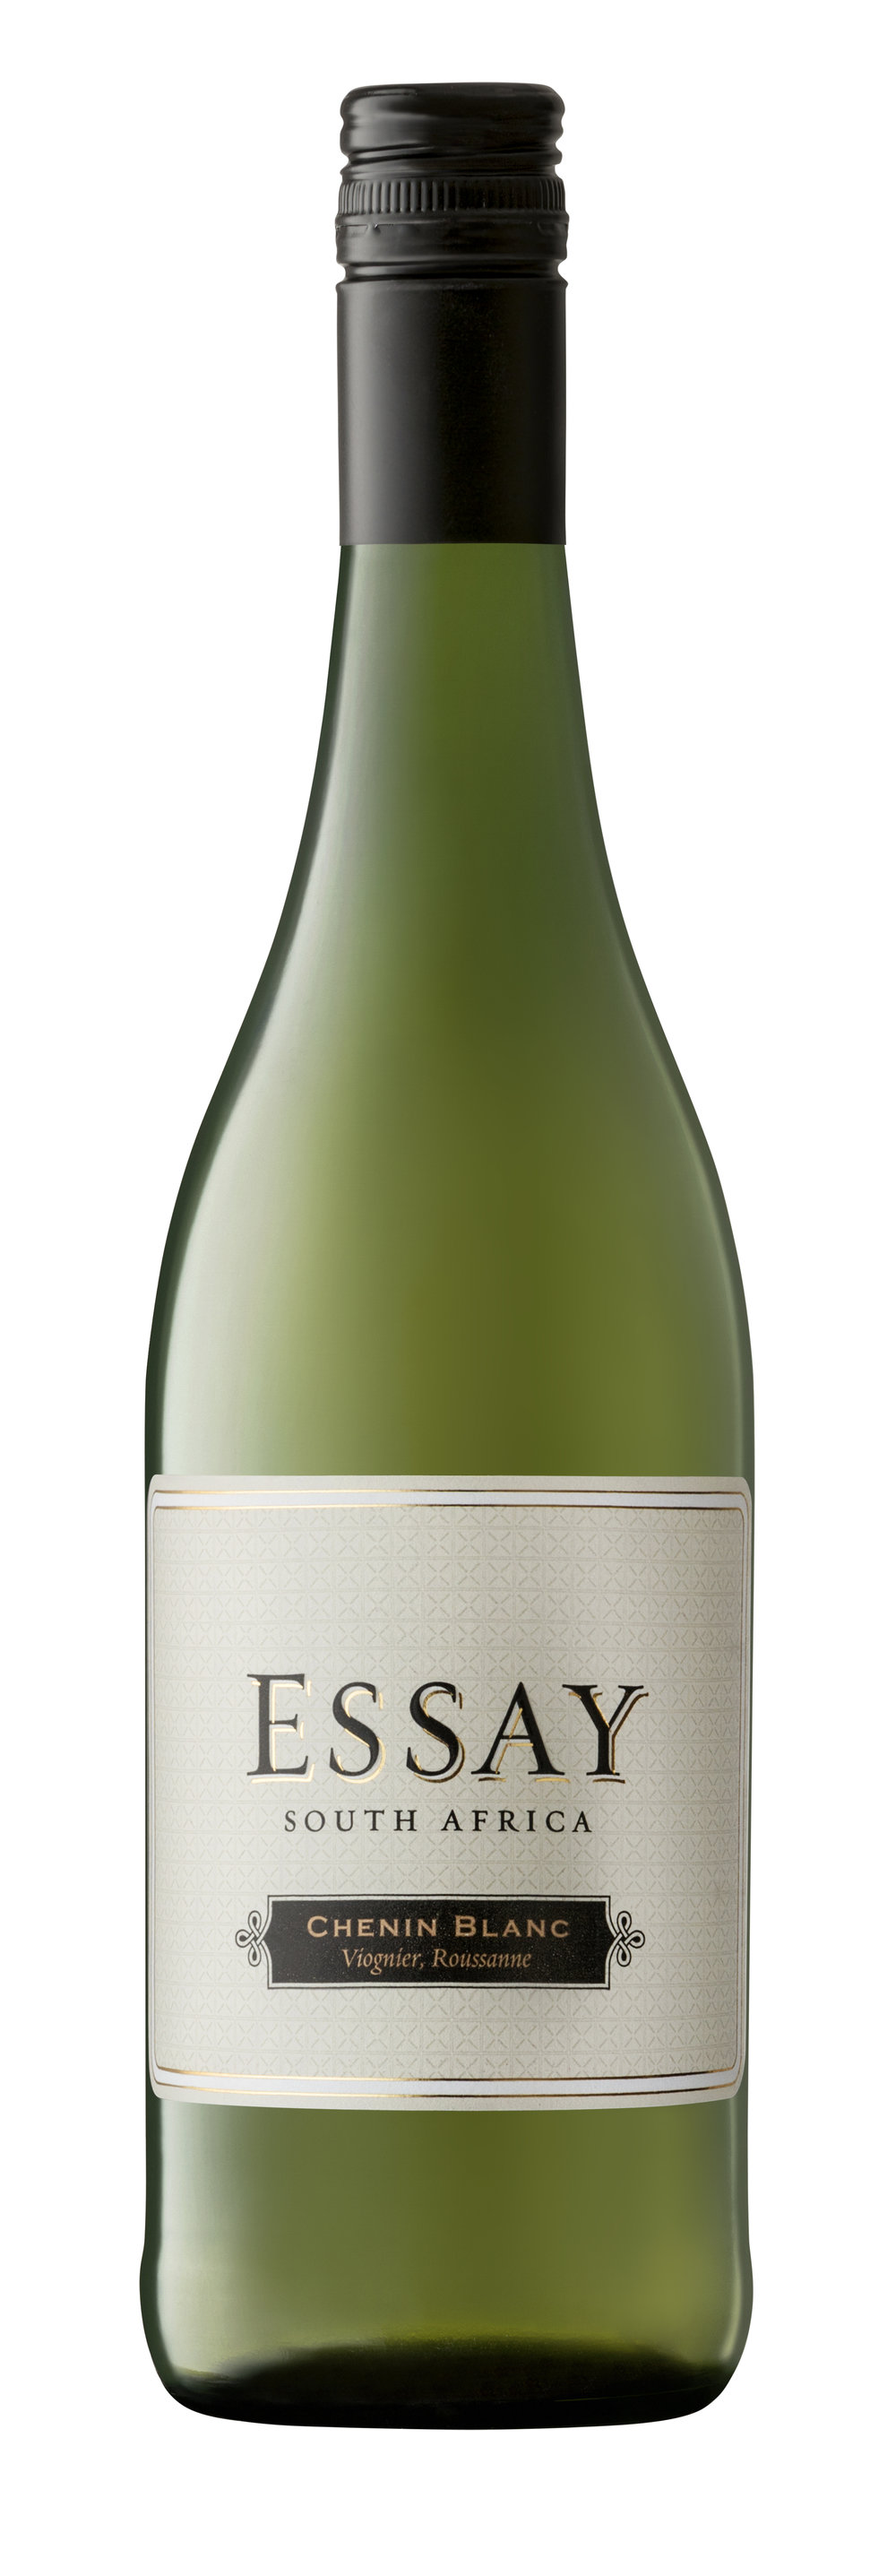 essay chenin blanc south africa Stenden south africa  indian chenin blanc, fume or sauvignon blanc, albarino  documents similar to food and wine pairing module assignment.